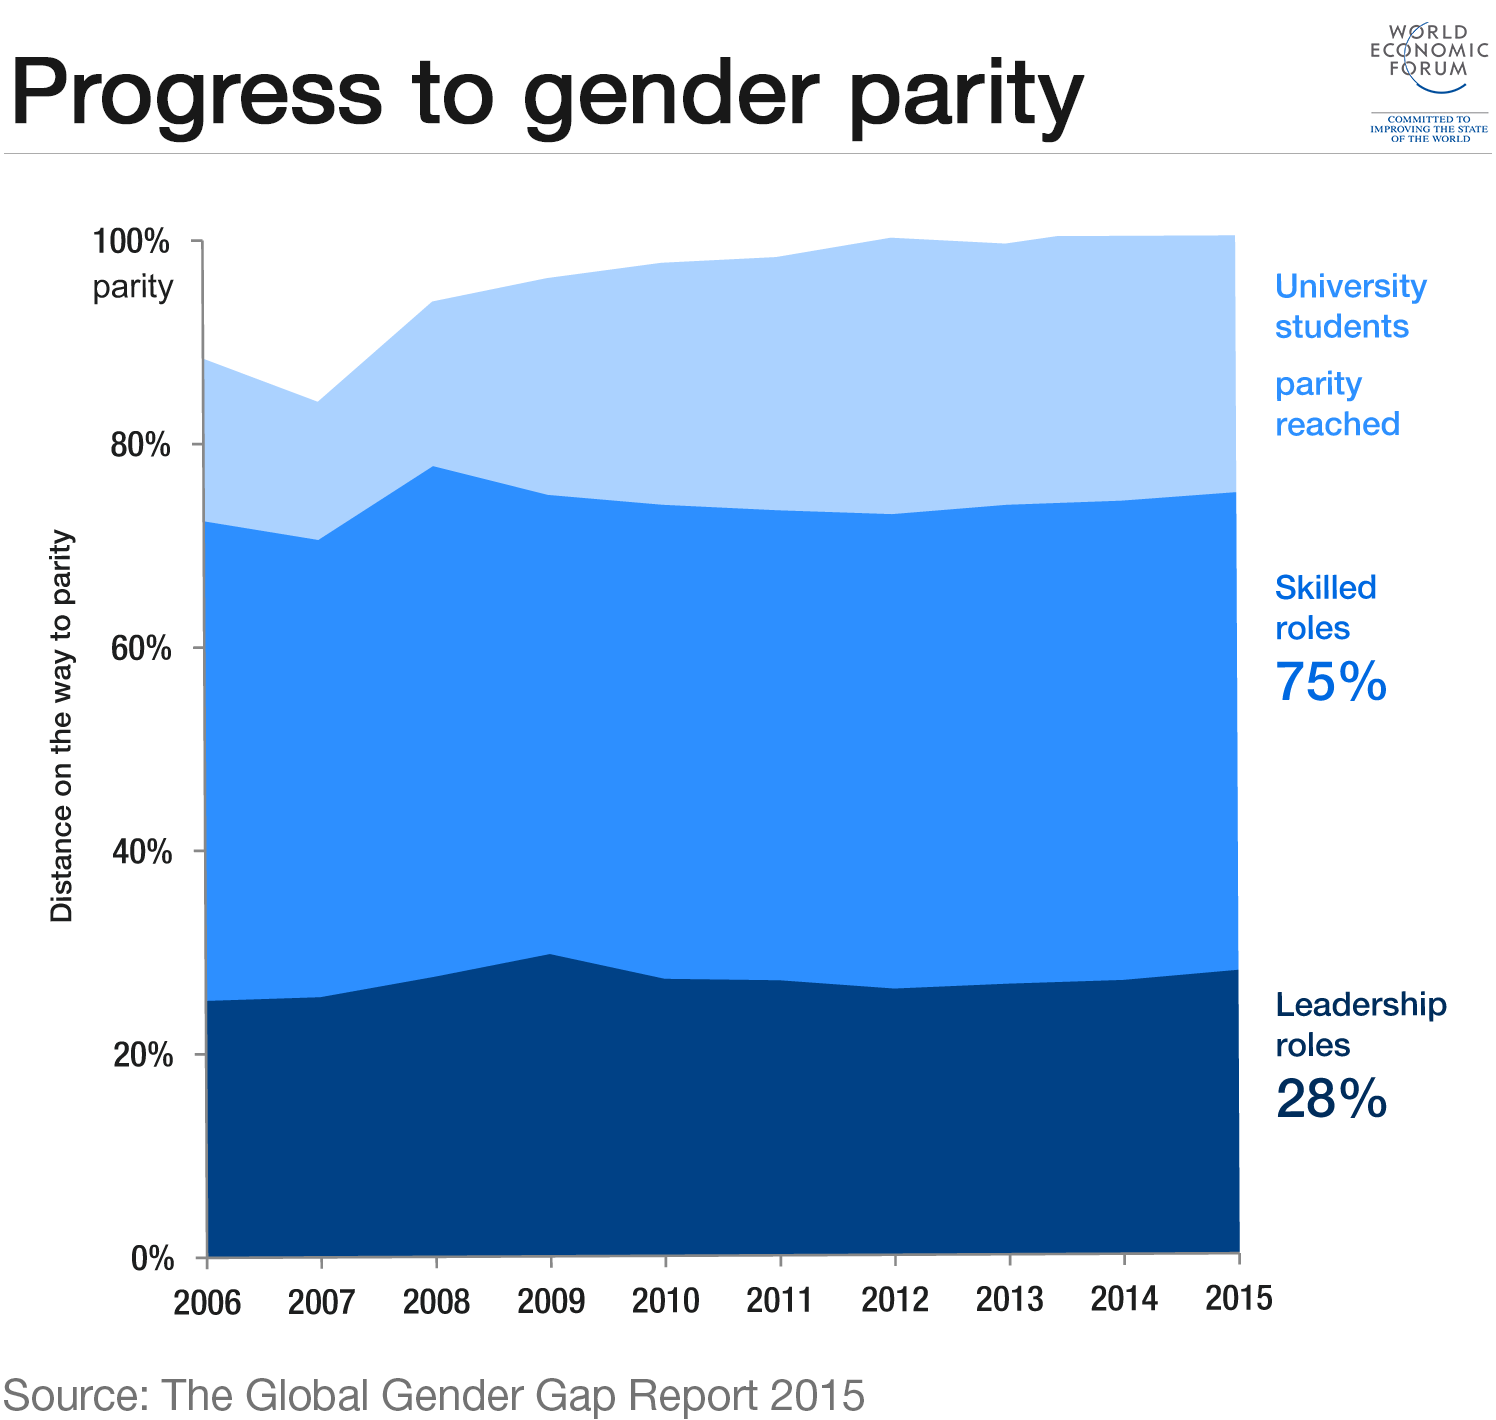 Progress to gender parity